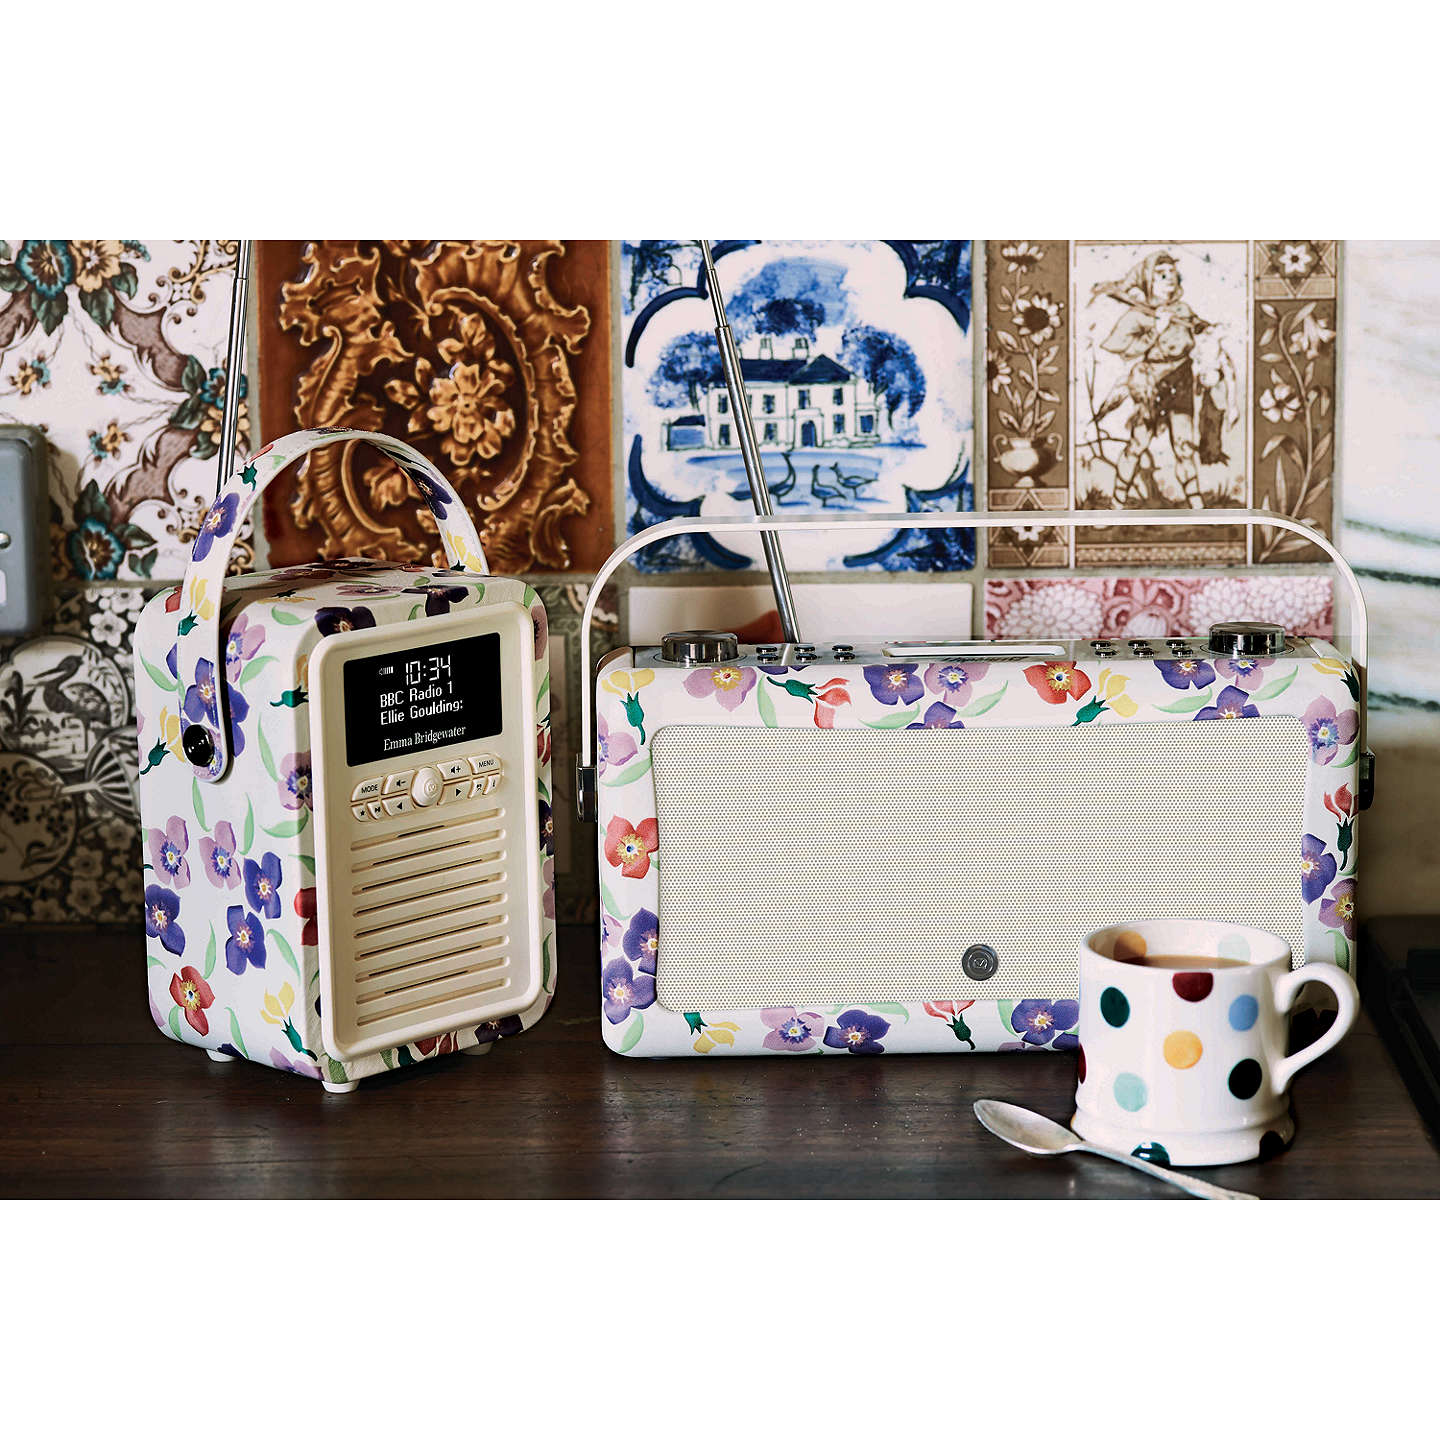 BuyVQ Retro Mini DAB/FM Bluetooth Digital Radio, Emma Bridgewater Patterns, Wallflower Online at johnlewis.com